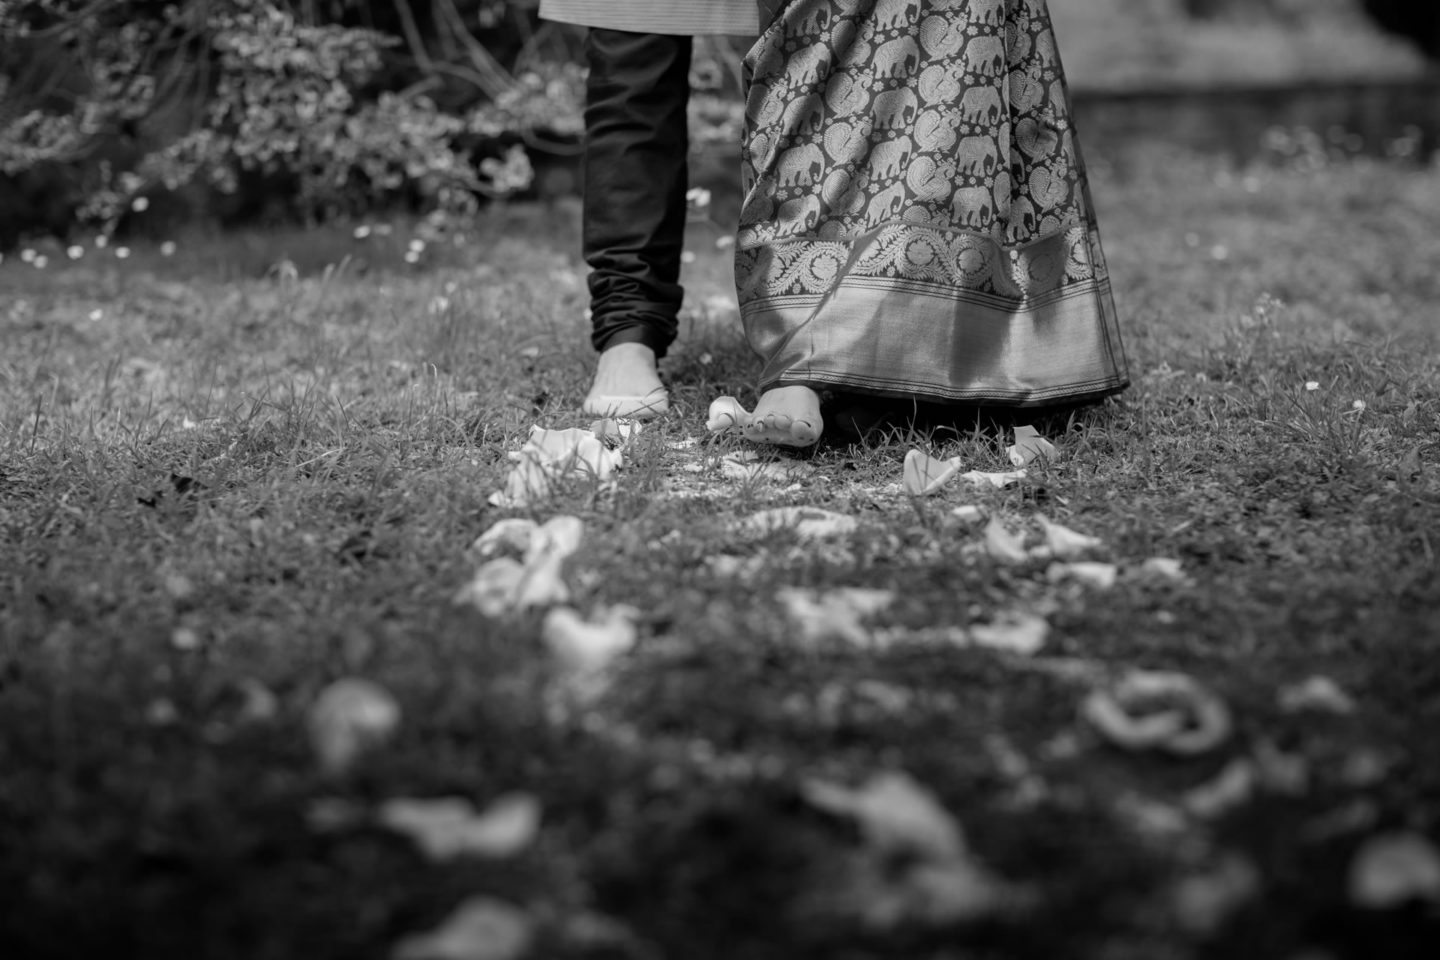 Indian wedding ceremony at Villa Pitiana :: Luxury wedding photography - 22